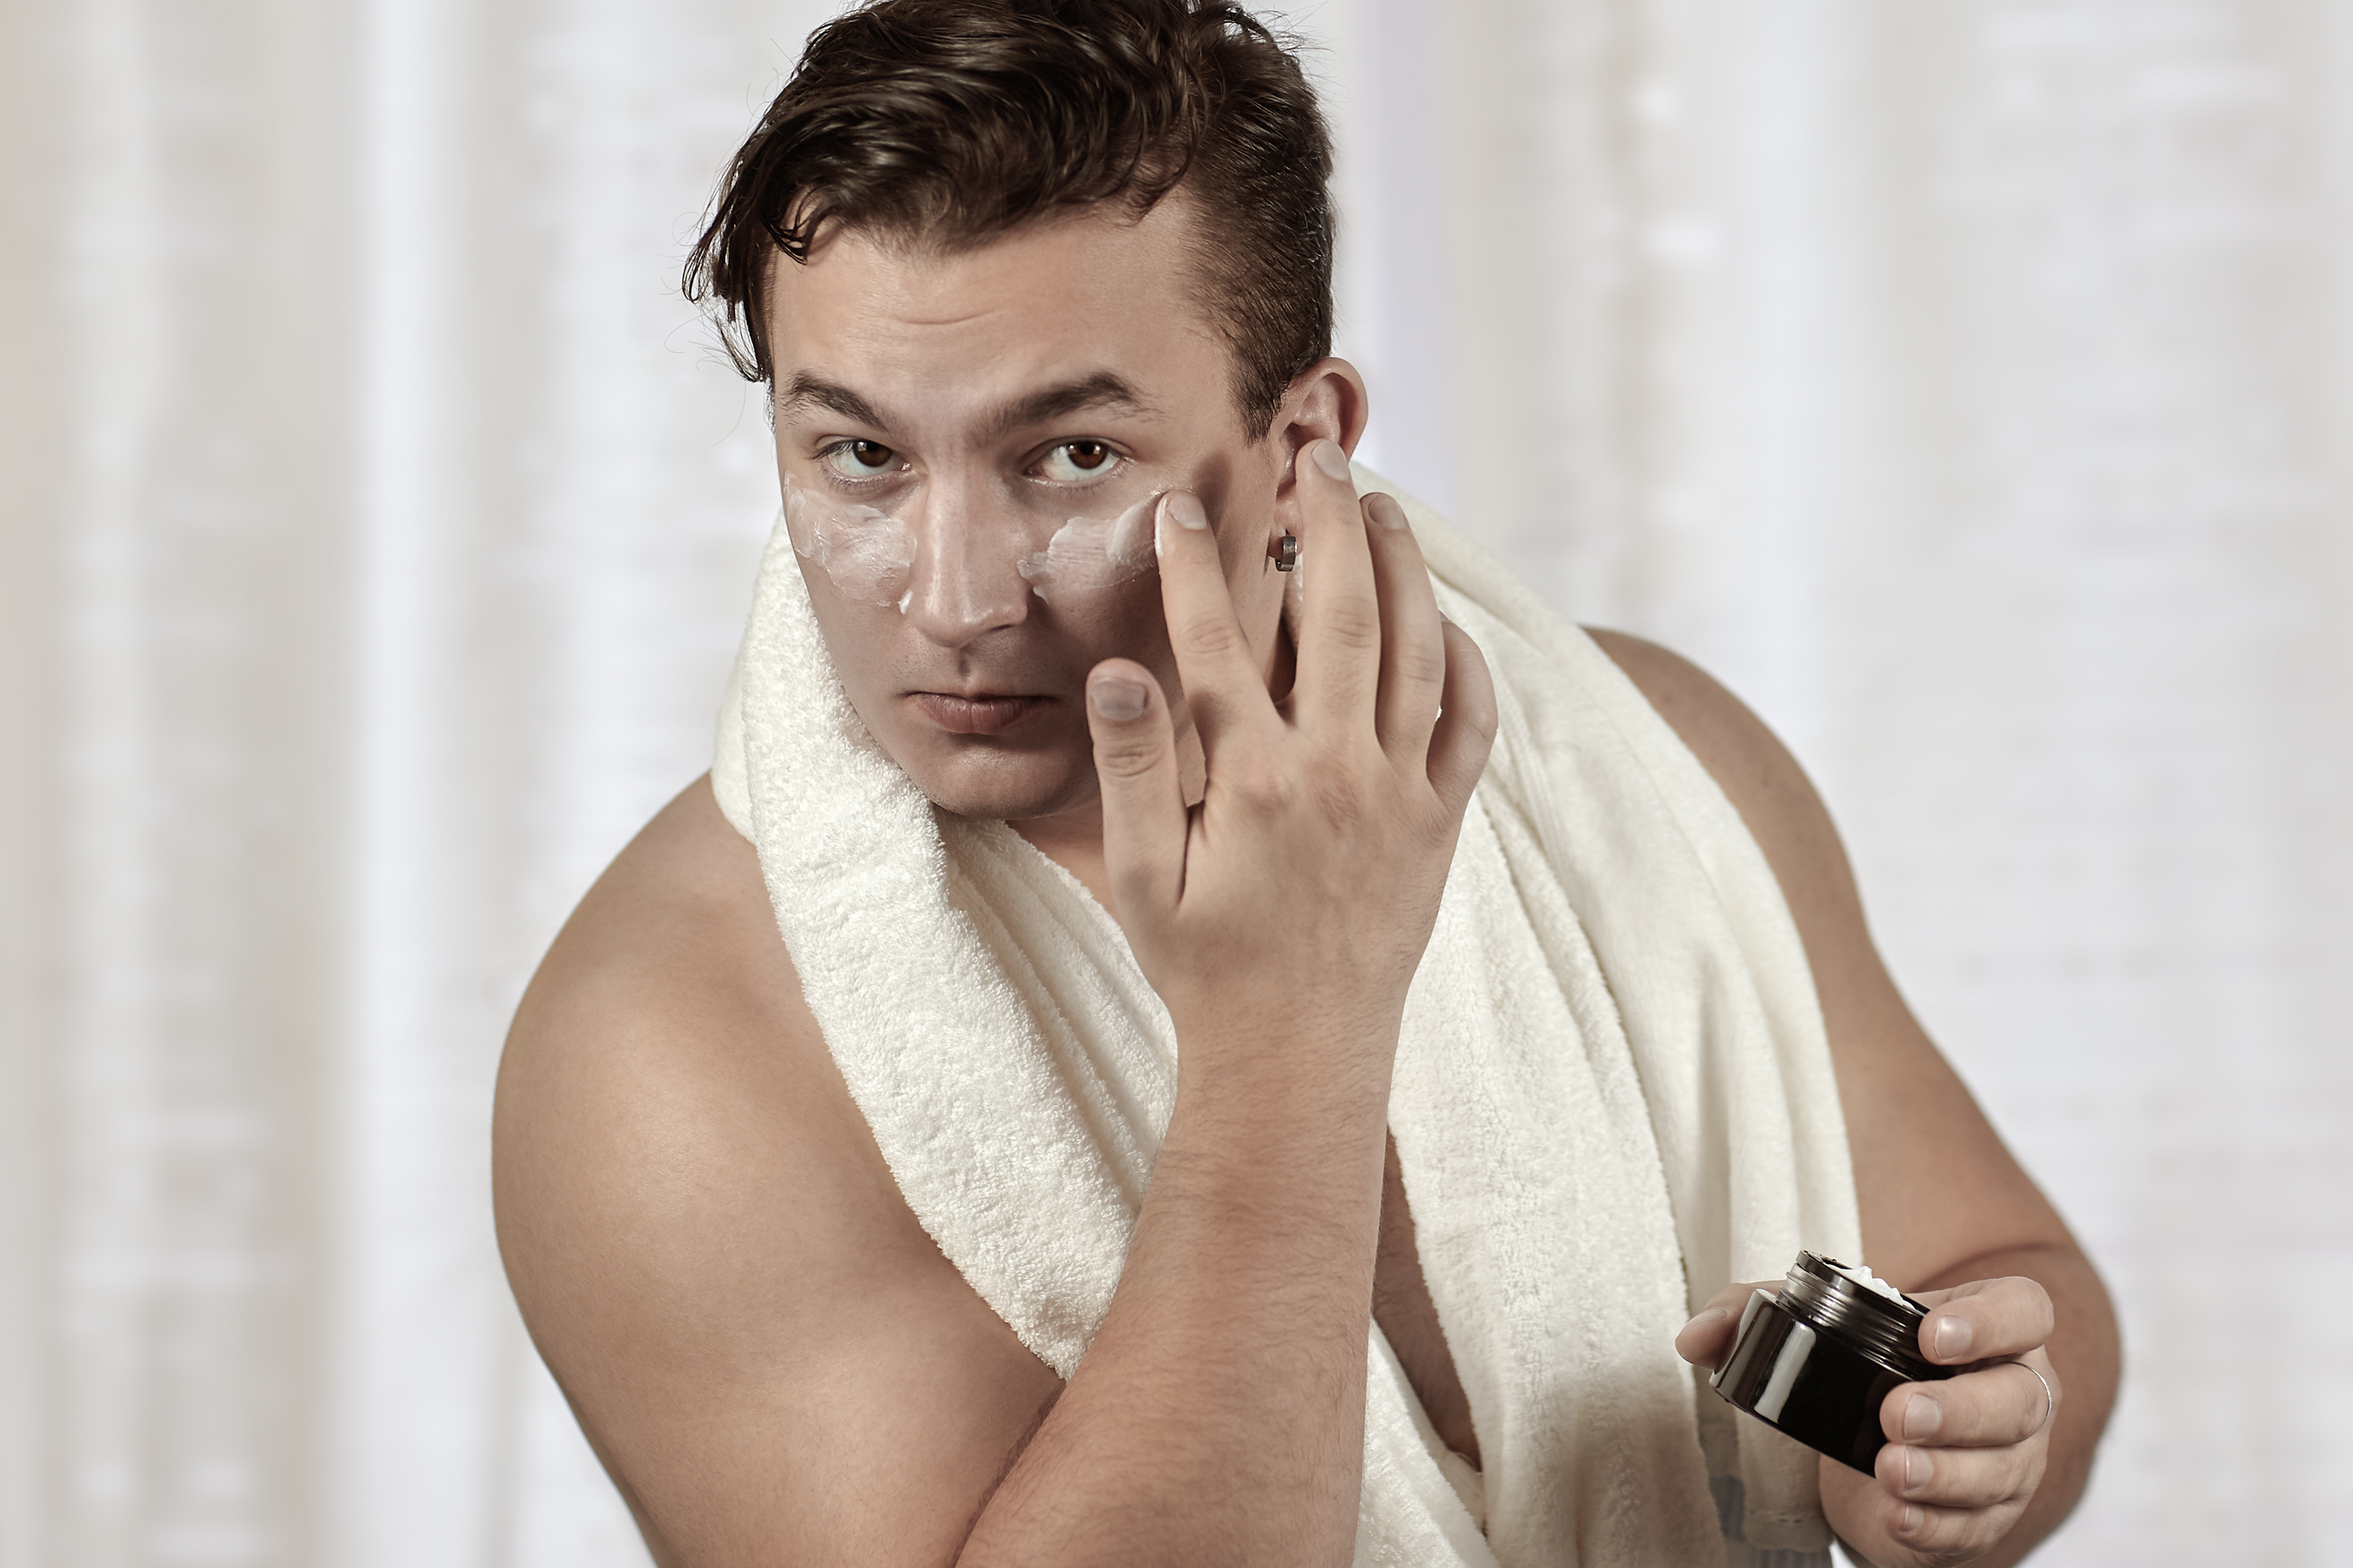 Young handsome caucasian man applying cream routine in the bathroom. Indoors, copy space.